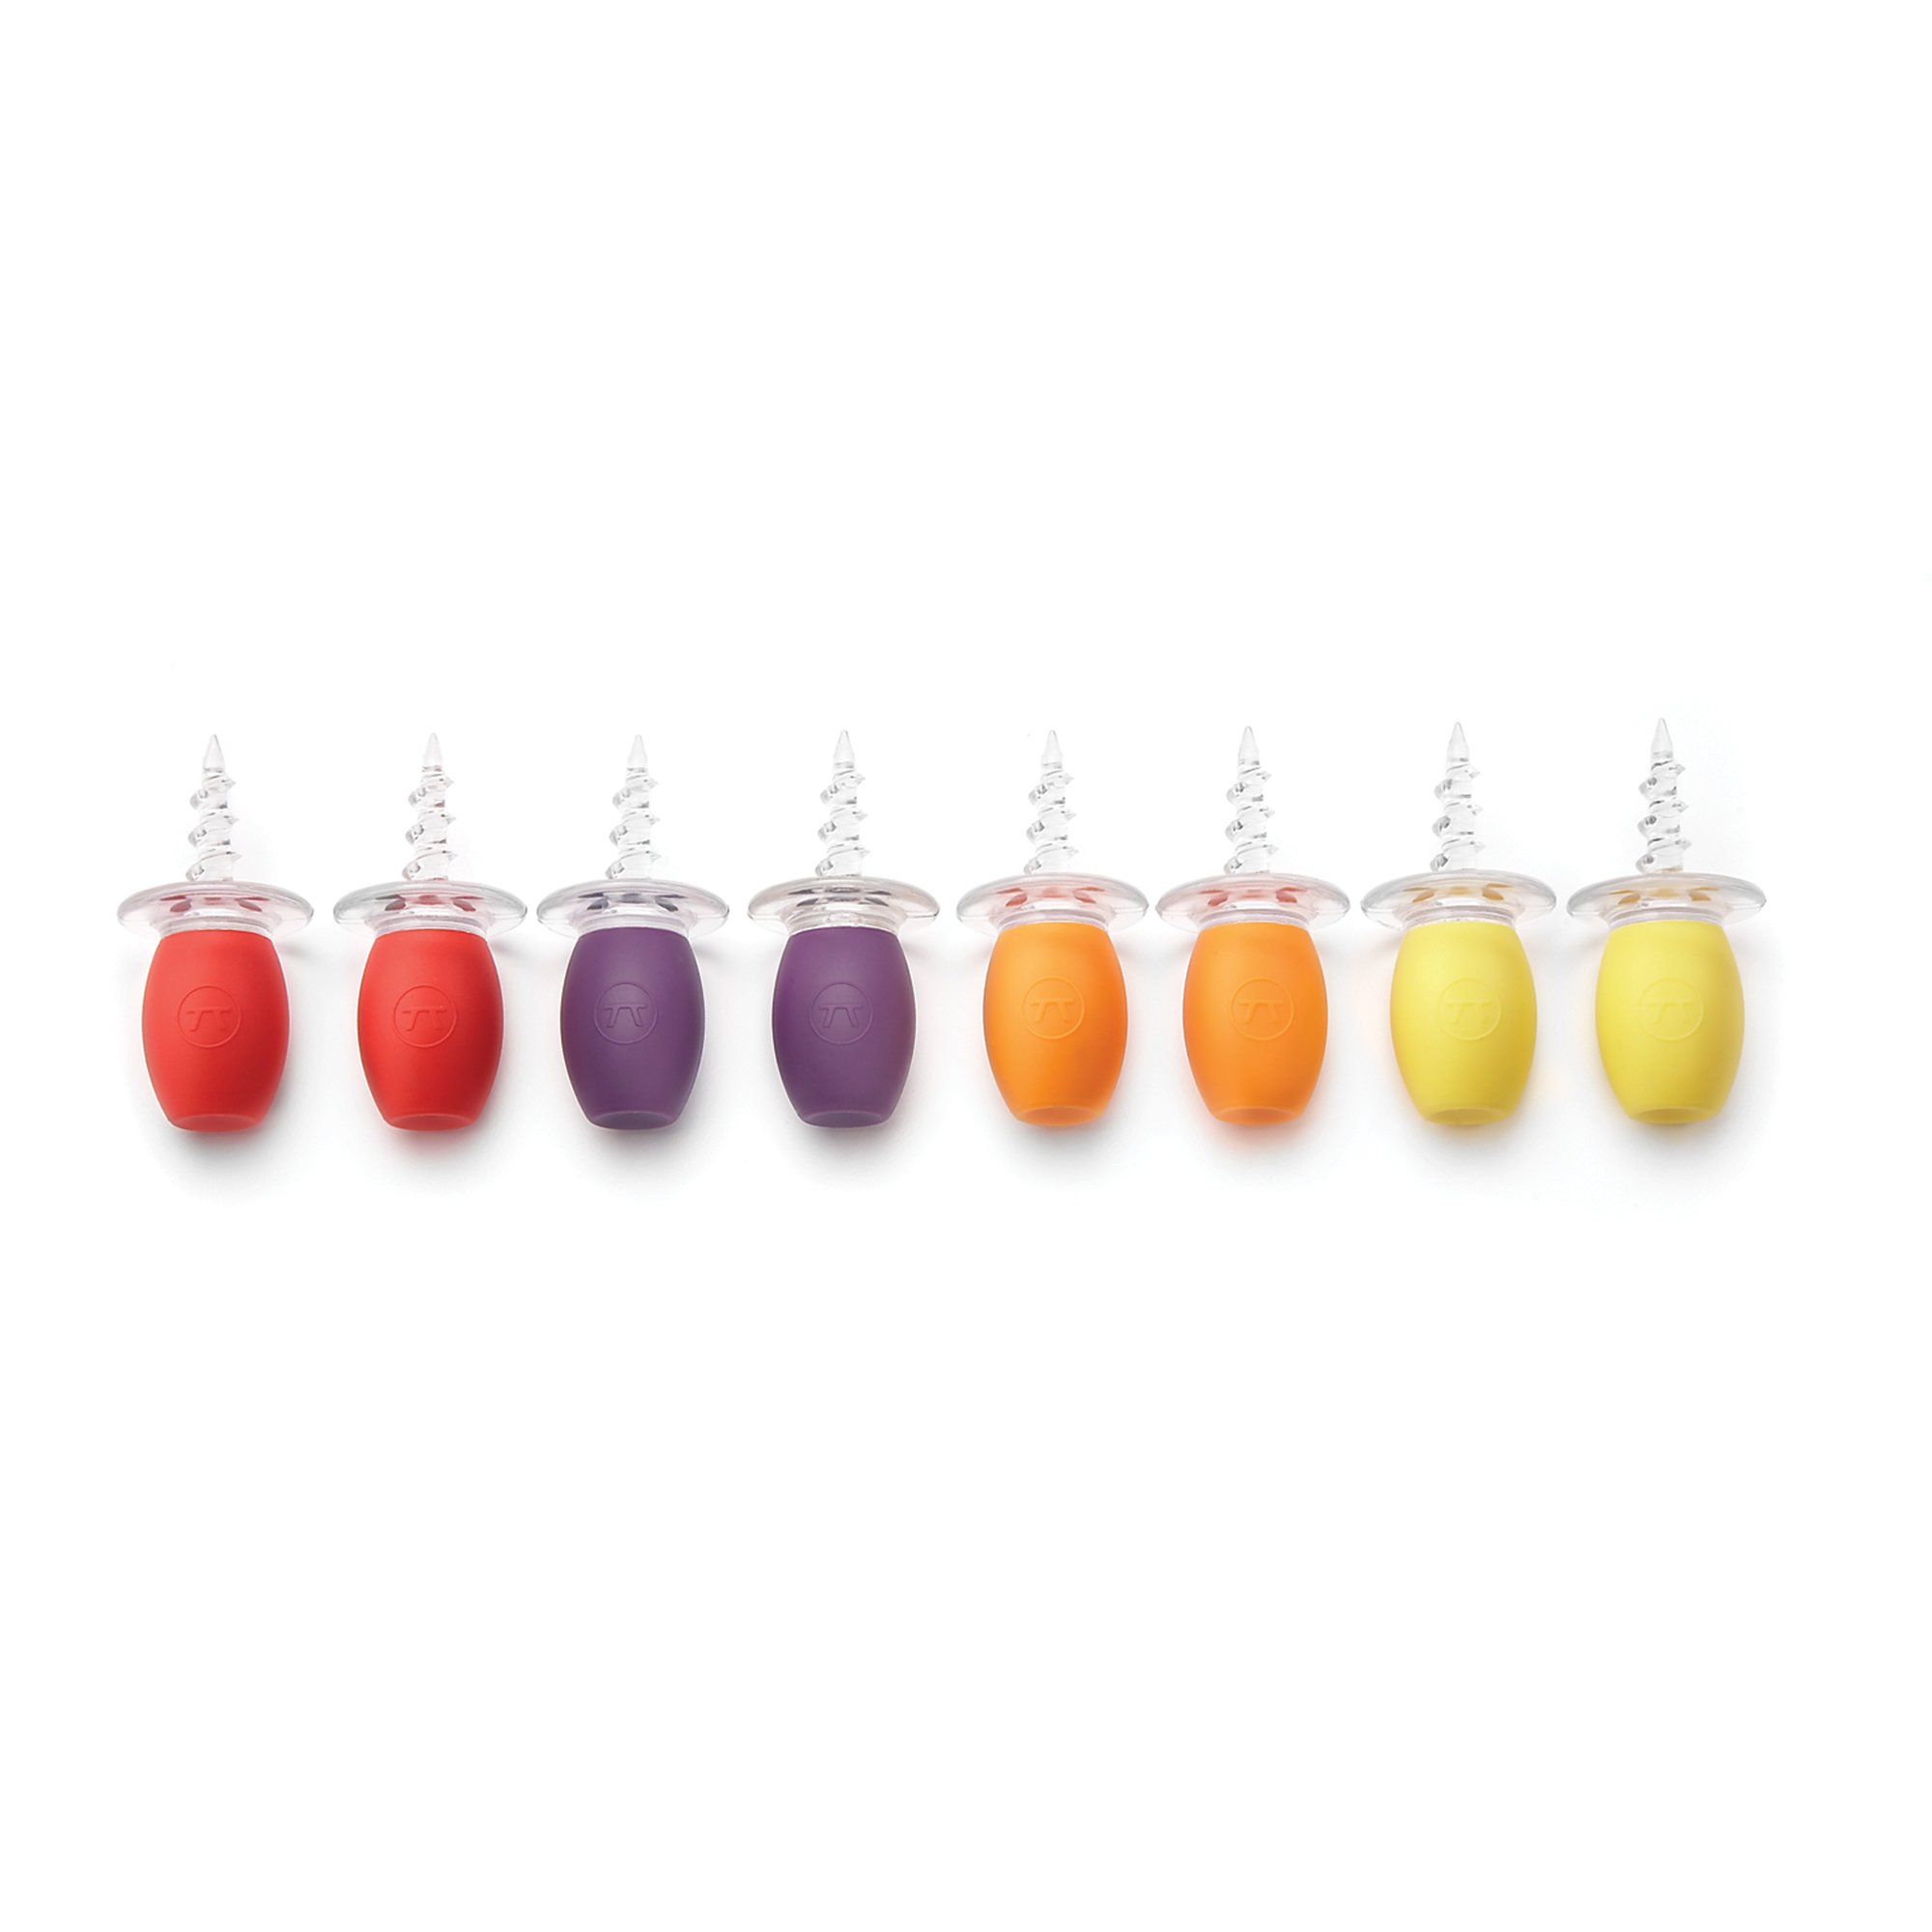 Outset F134 Oversized Multi-Colored Corn Holders, Set of 8